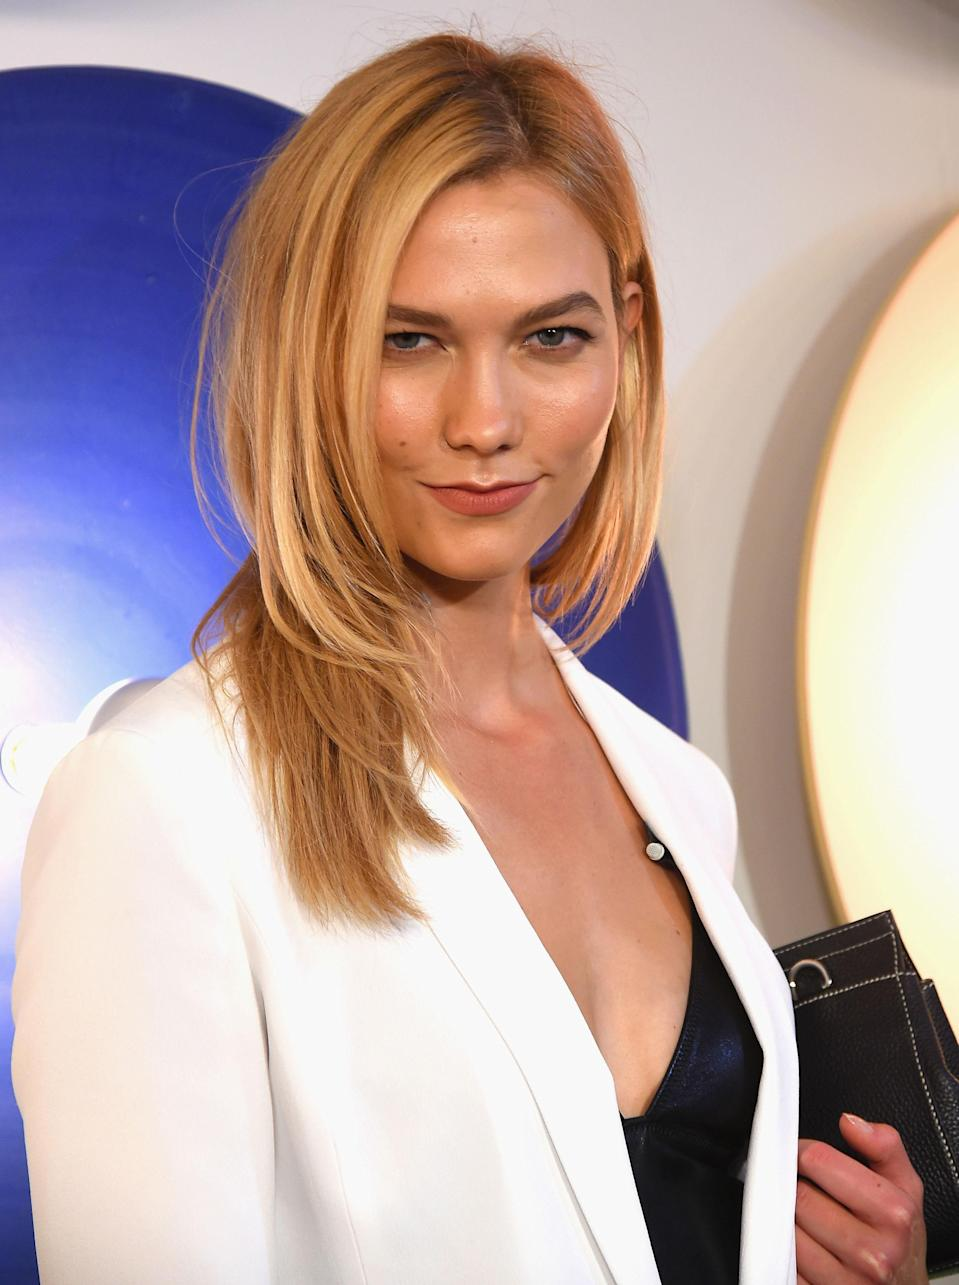 """<p>If a top model has a cheat day, you should too. """"I eat really healthy because I feel better and I feel like I have better energy,"""" <a href=""""http://greatideas.people.com/2014/11/12/karlie-kloss-diet-fitness-thanksgiving/"""" rel=""""nofollow noopener"""" target=""""_blank"""" data-ylk=""""slk:Kloss told People."""" class=""""link rapid-noclick-resp"""">Kloss told <em>People</em>.</a> """"On a cheat day though, I'm all about dark chocolate. Dark chocolate, sea salts, throw a little caramel in there, it's heaven<span>."""" But since life is about balance, Kloss said a spin class is also a cheat day necessity. </span>""""Every day I go to SoulCycle is a cheat day. Somehow it justifies it,"""" <a href=""""http://greatideas.people.com/2014/11/12/karlie-kloss-diet-fitness-thanksgiving/"""" rel=""""nofollow noopener"""" target=""""_blank"""" data-ylk=""""slk:she told the magazine"""" class=""""link rapid-noclick-resp"""">she told the magazine</a>.</p>"""